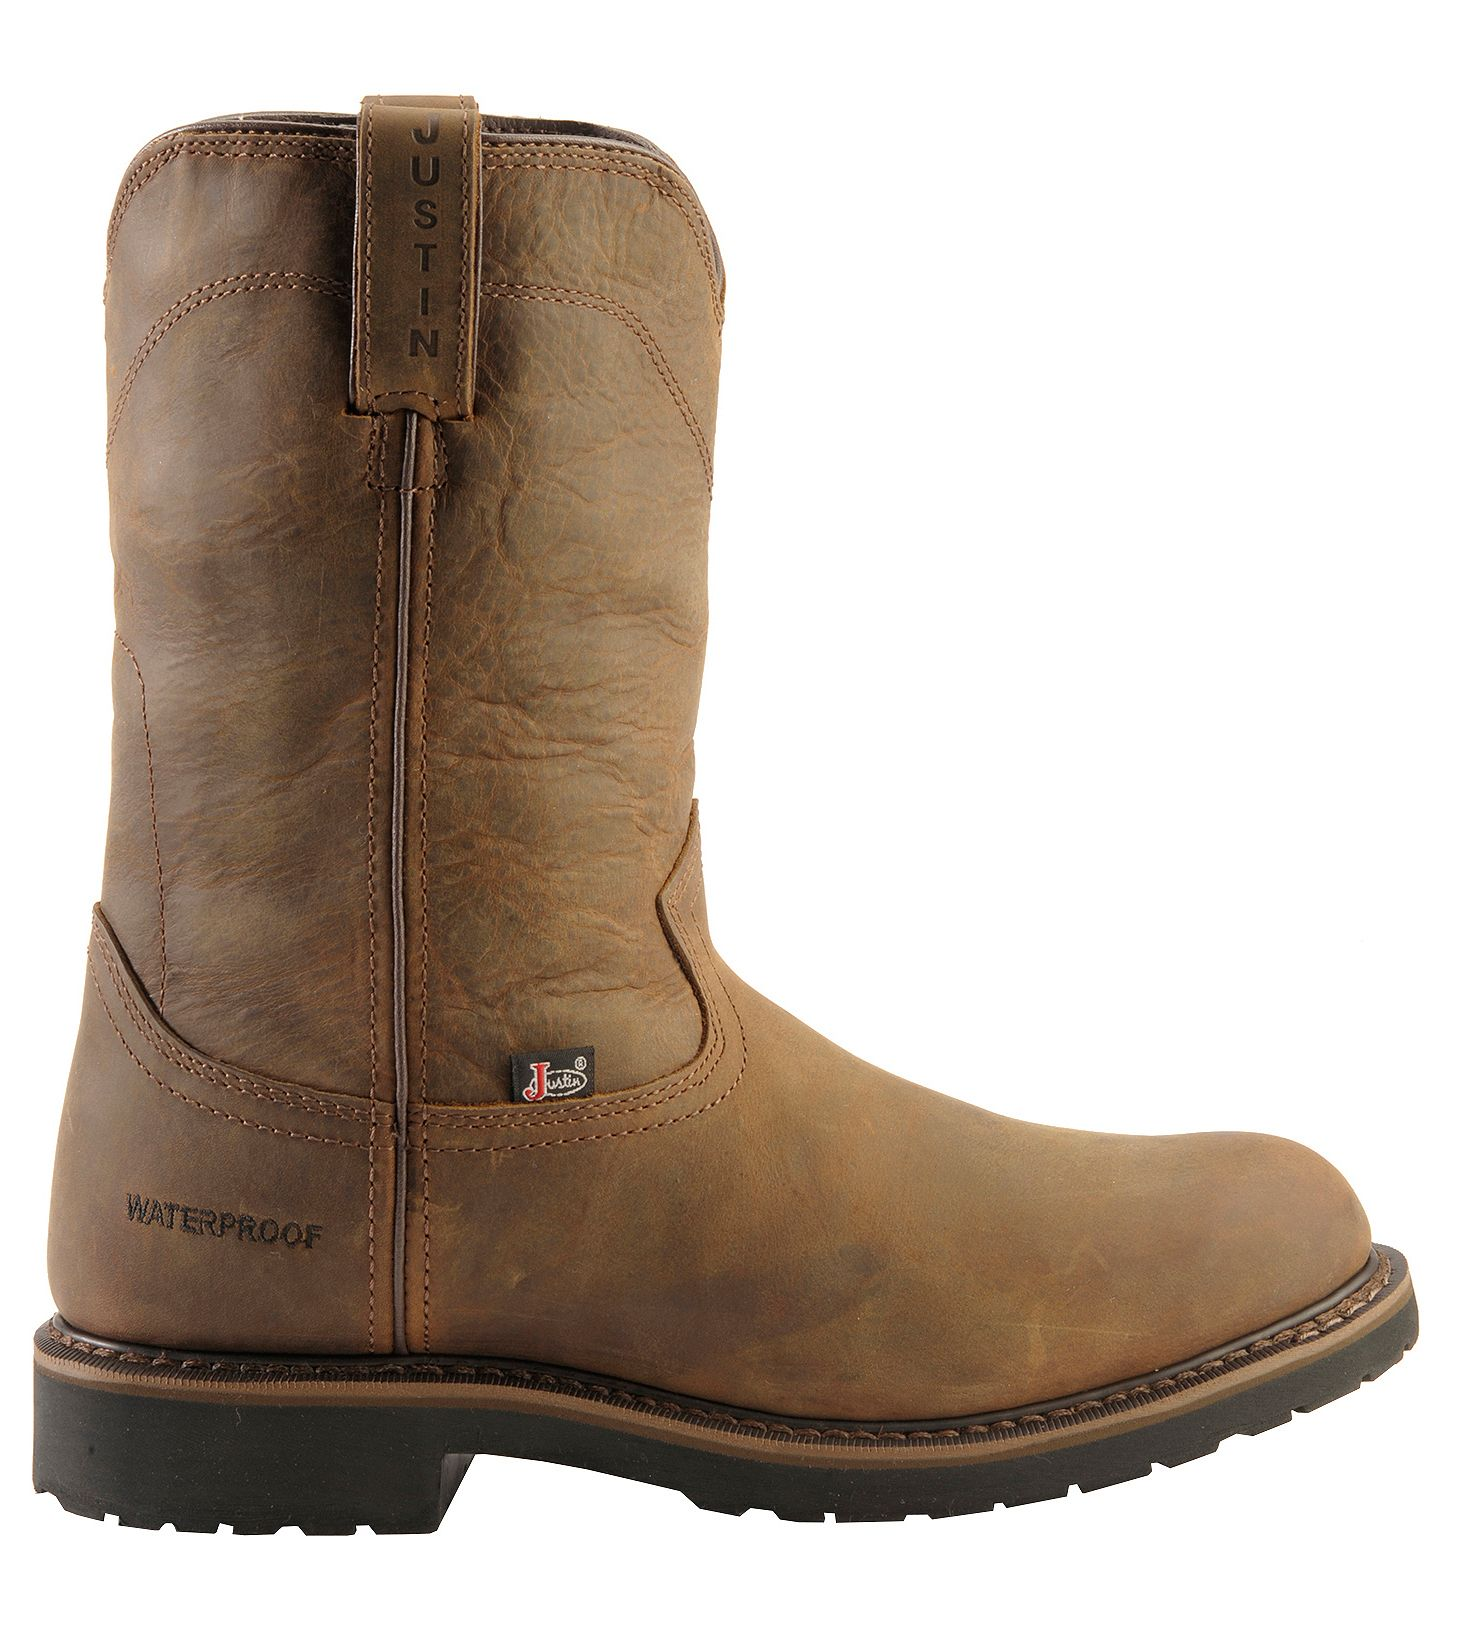 Find great deals on eBay for sheplers boot. Shop with confidence.